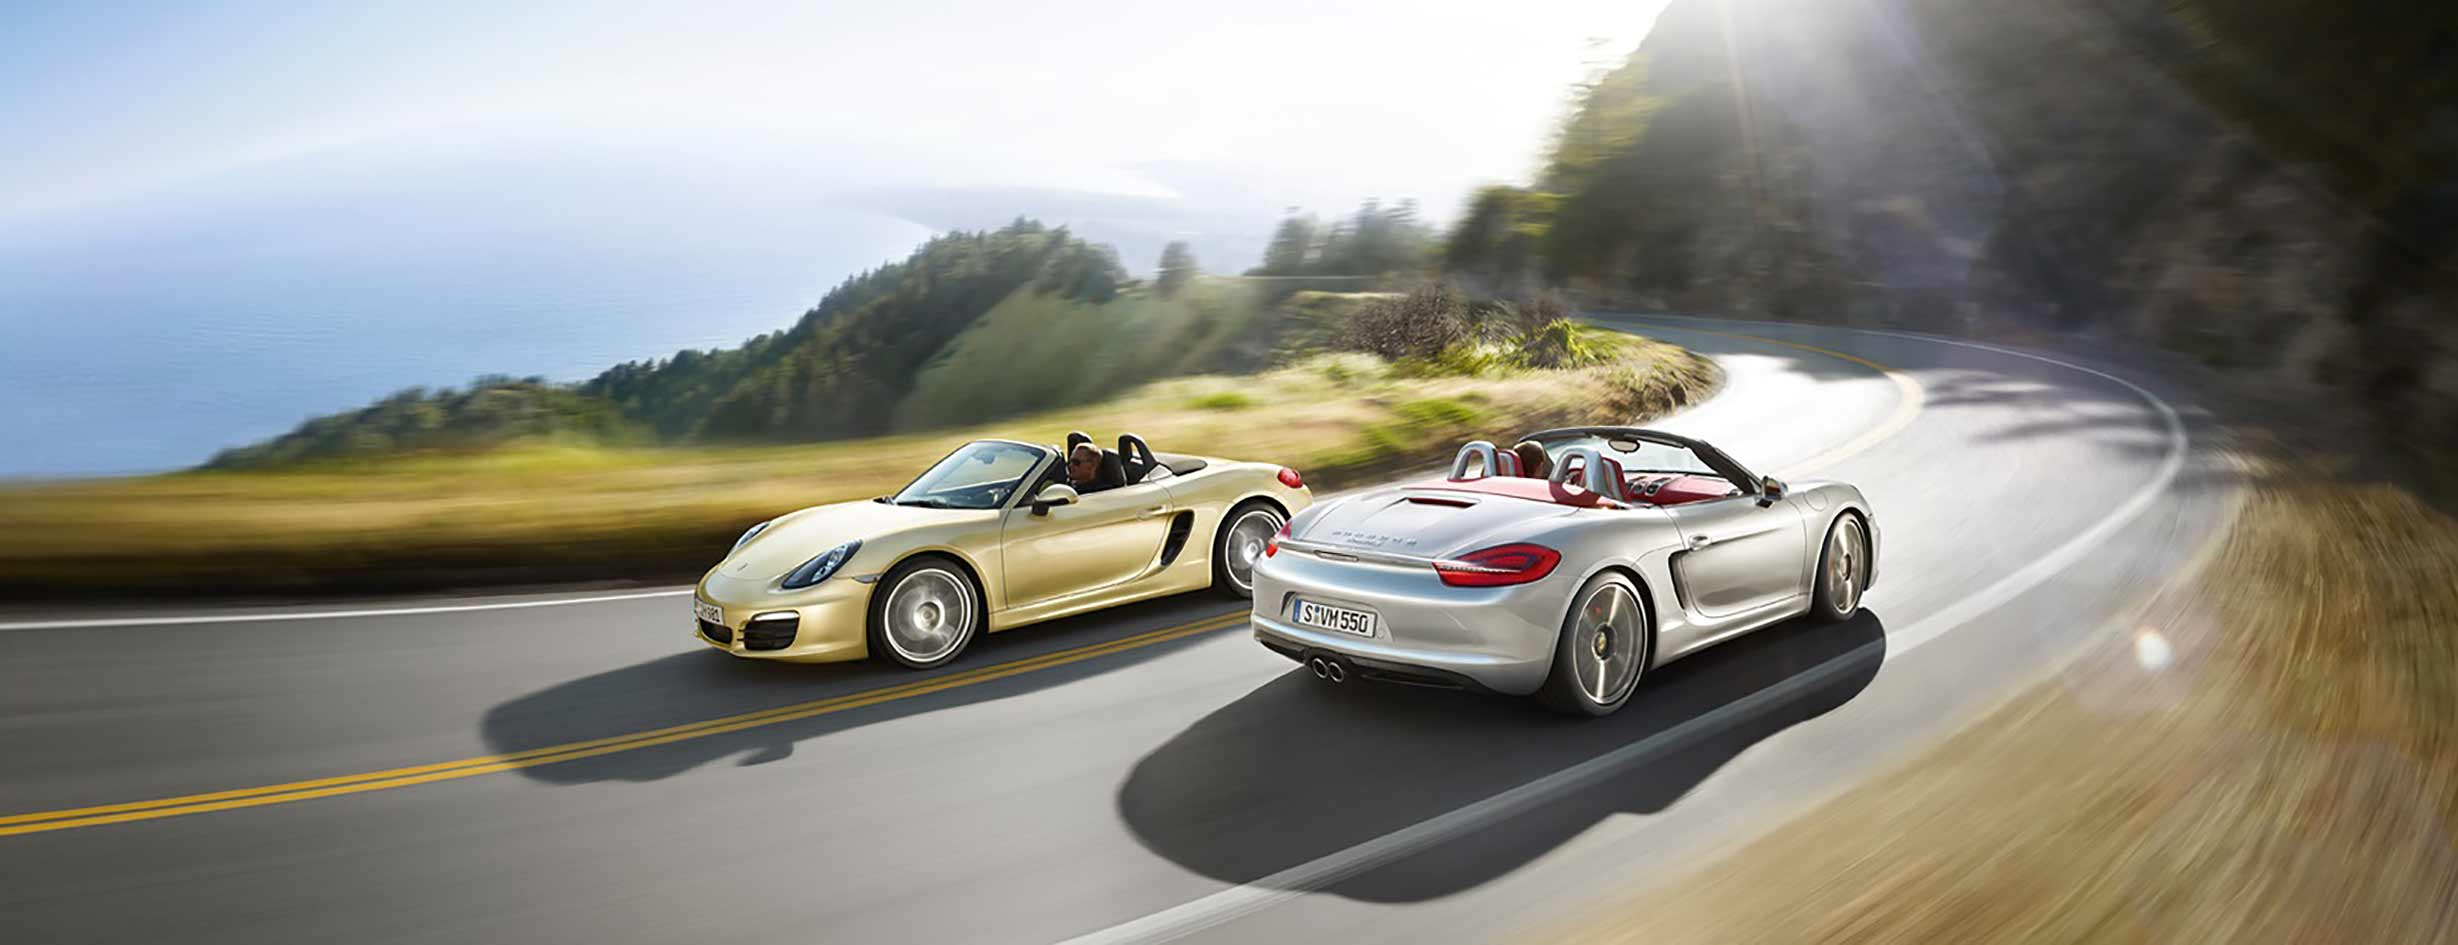 Boxster and Cayman